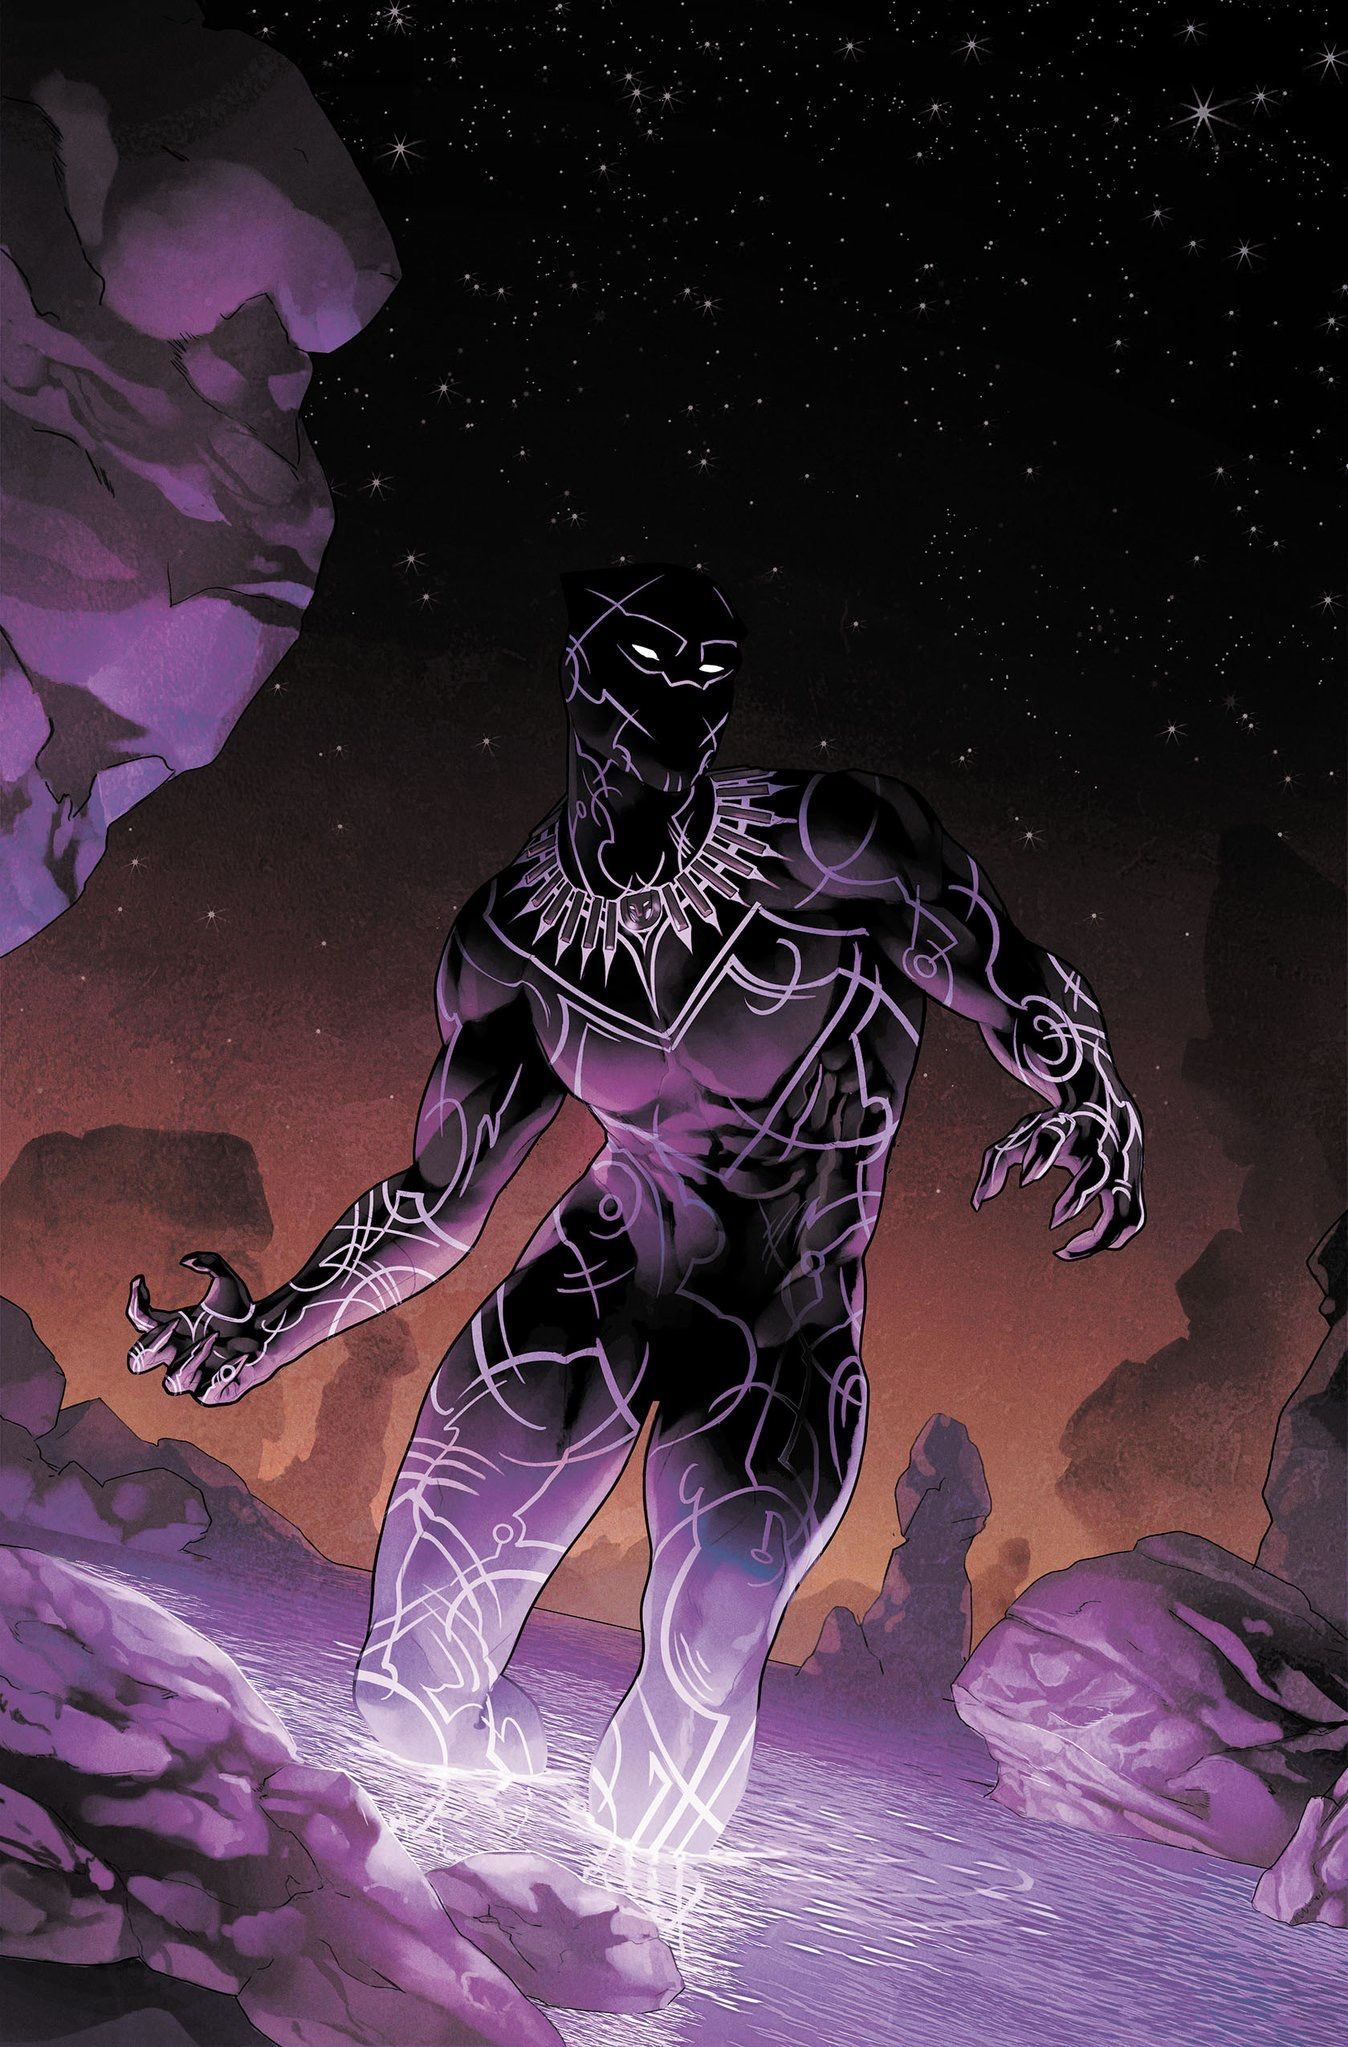 I Love Black Panther Black Panther Comic Black Panther Art Black Panther Marvel